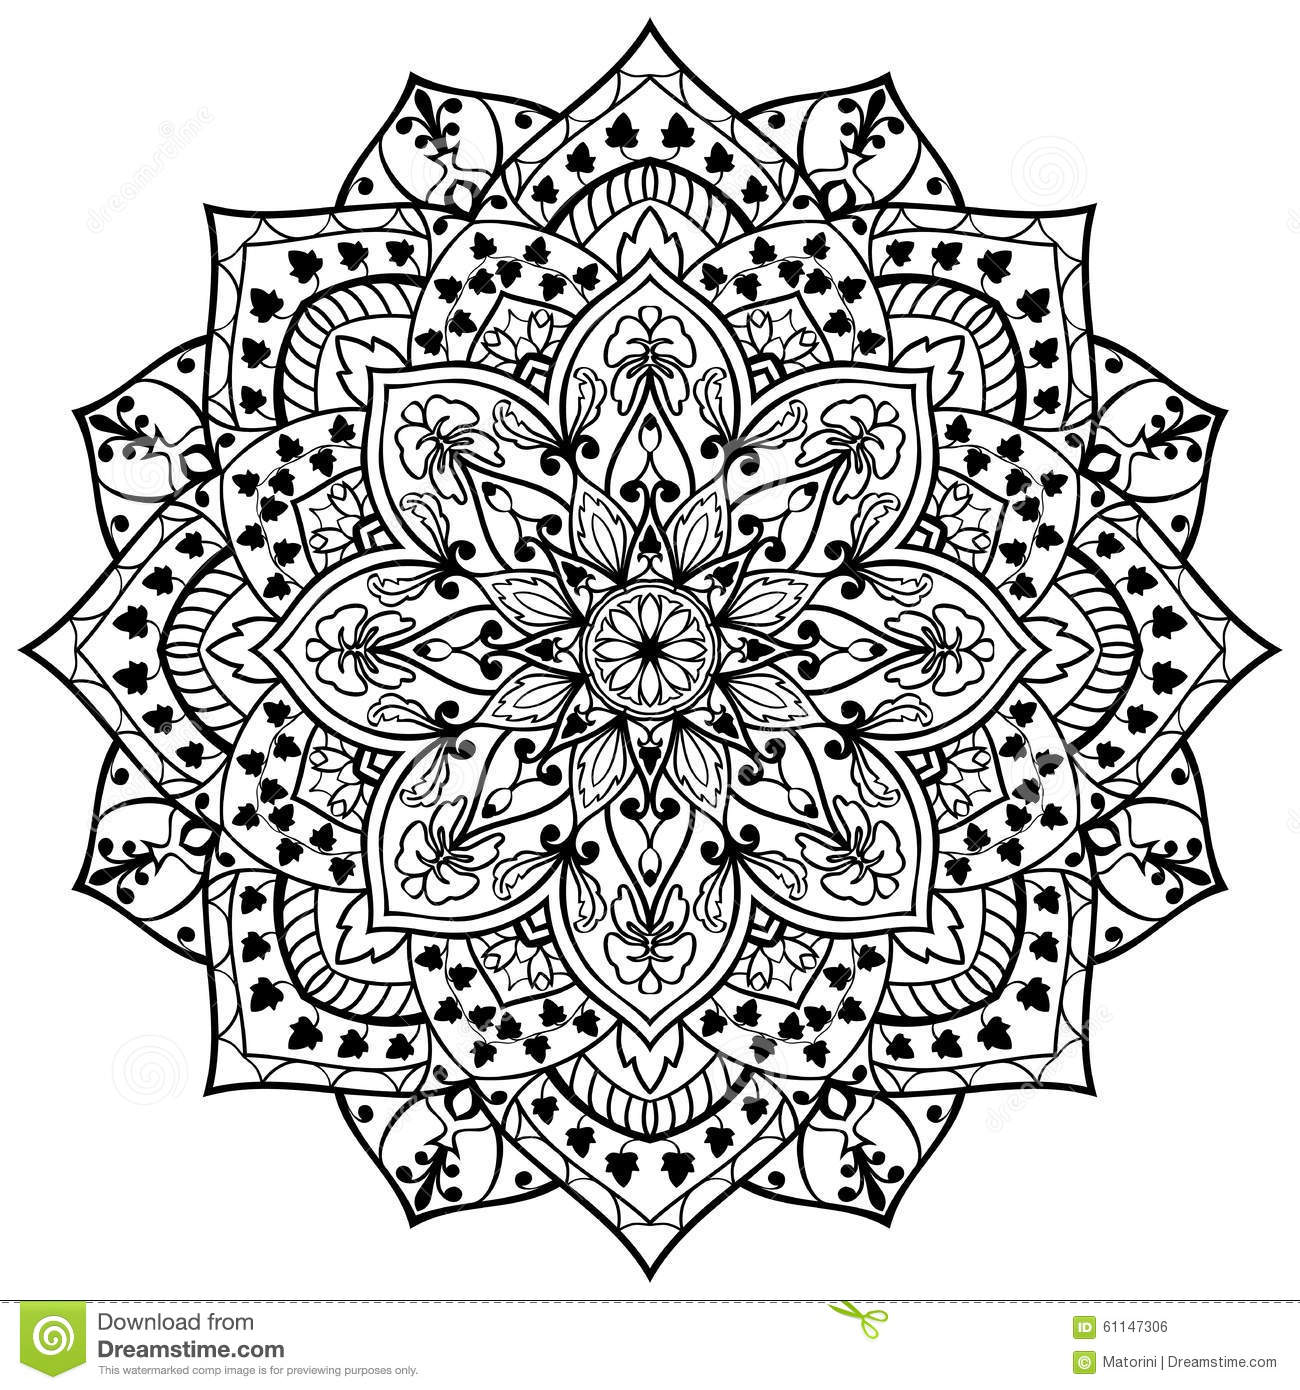 Stock Illustration Flower Mandala Black Lines Vector White Background Round Element Decor Stylized Ivy Leaves Template Any Image61147306 on simple mosaic tile patterns